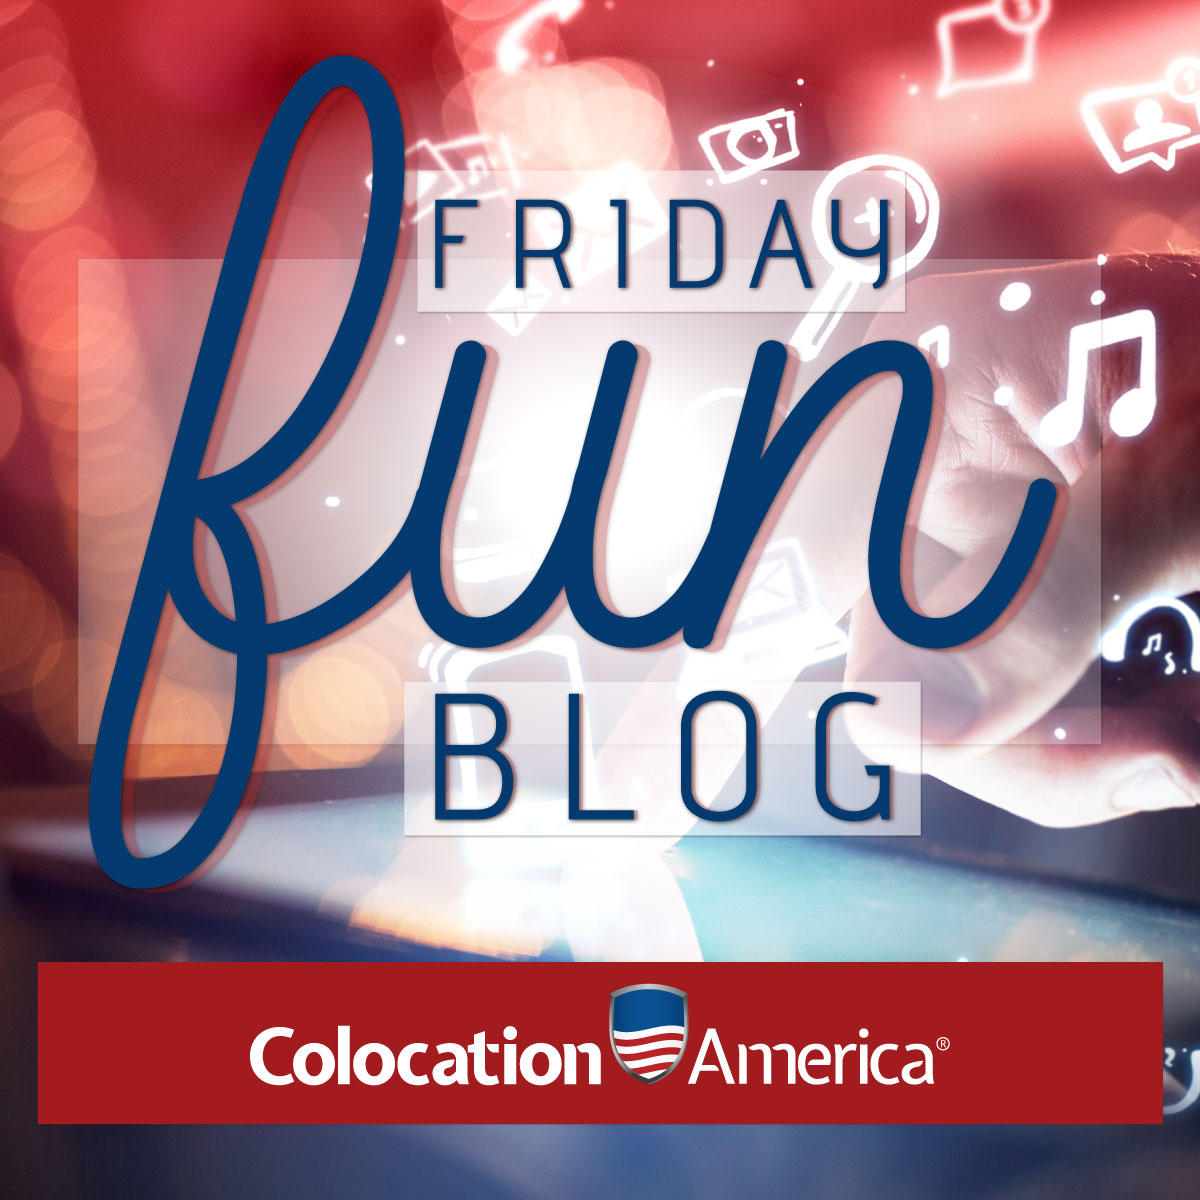 colocation america friday fun blog